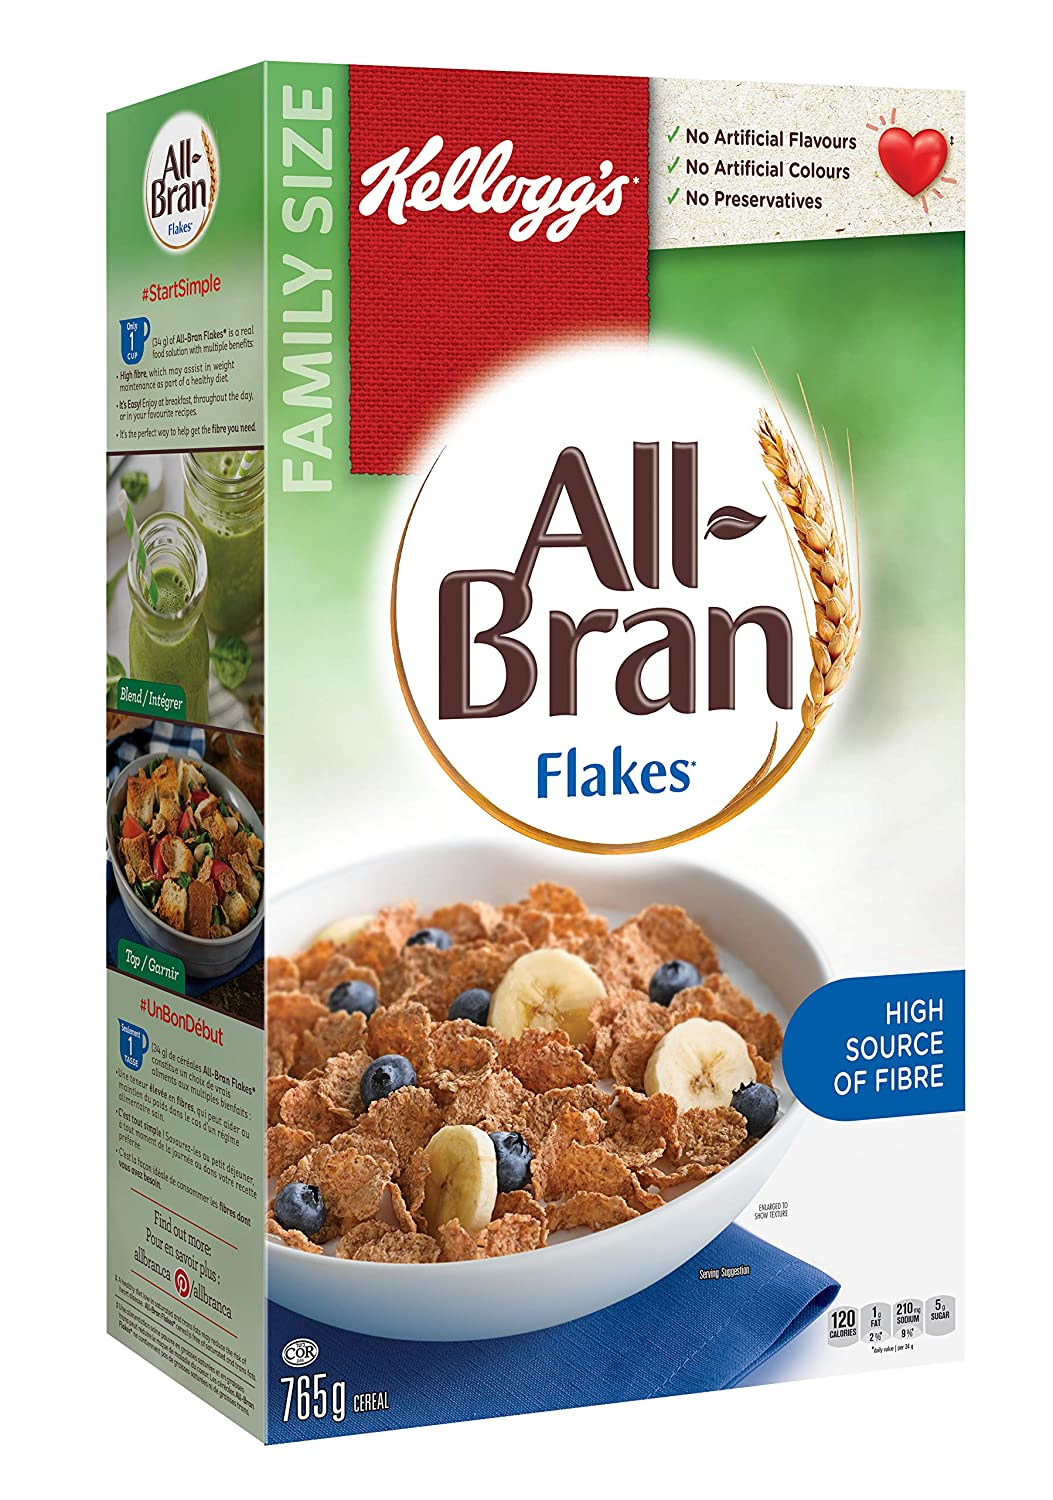 Kellogg's All-Bran Flakes Cereal, 765g, 765g